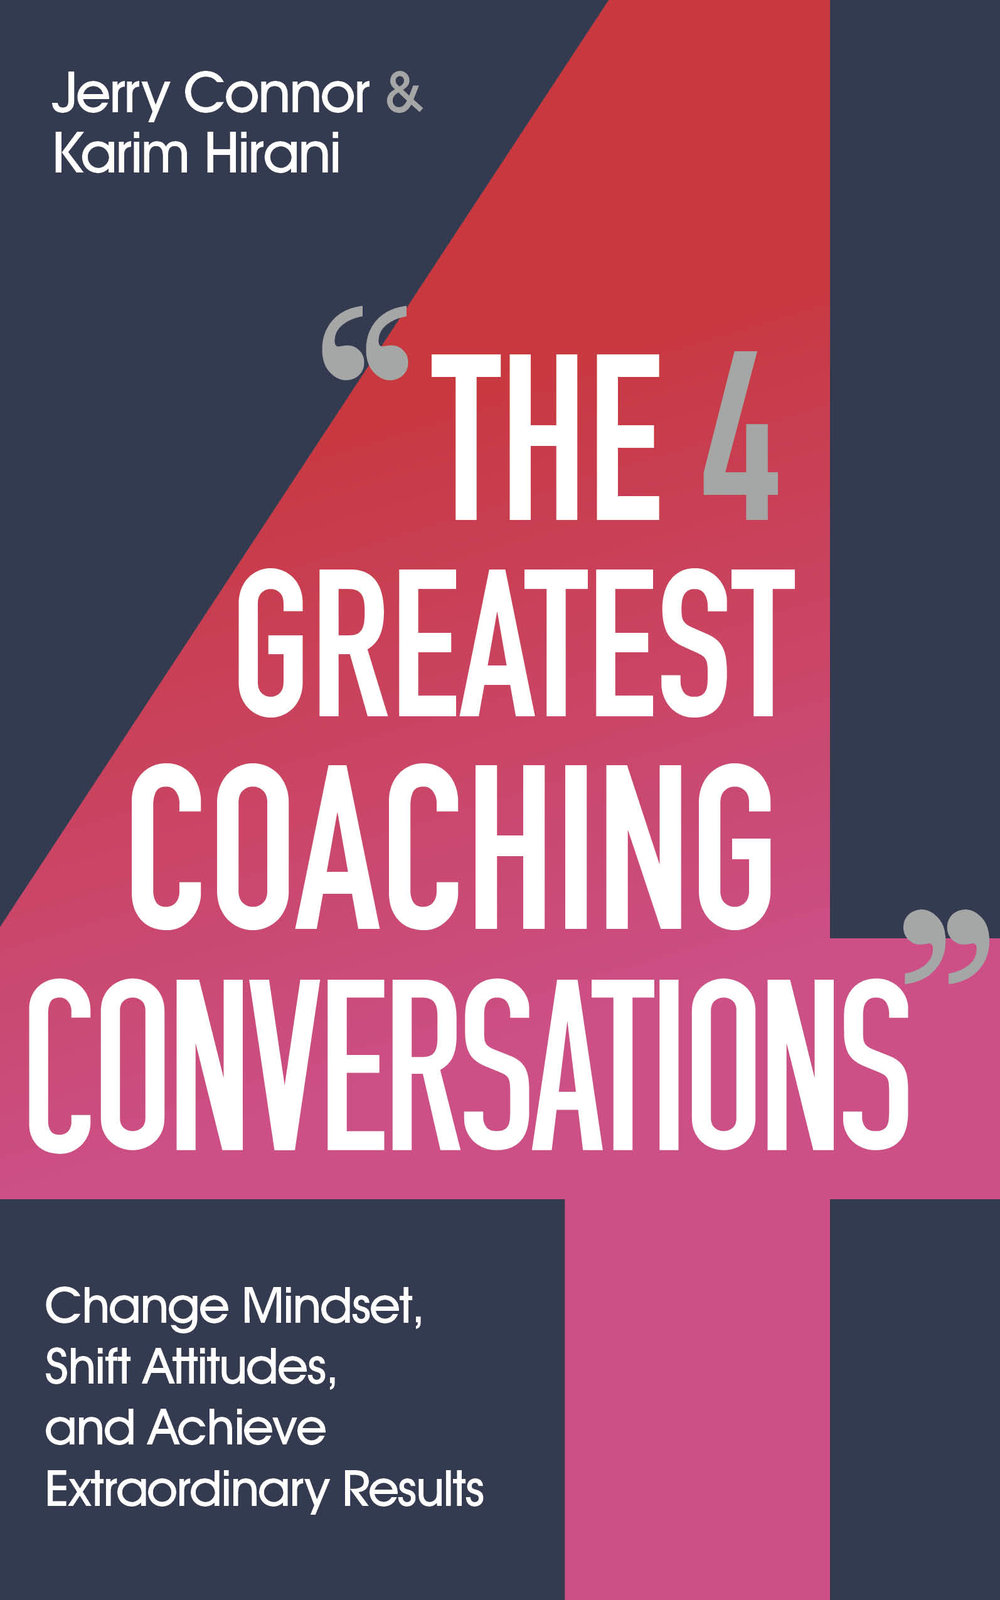 The Four Greatest Coaching Coversations.jpg